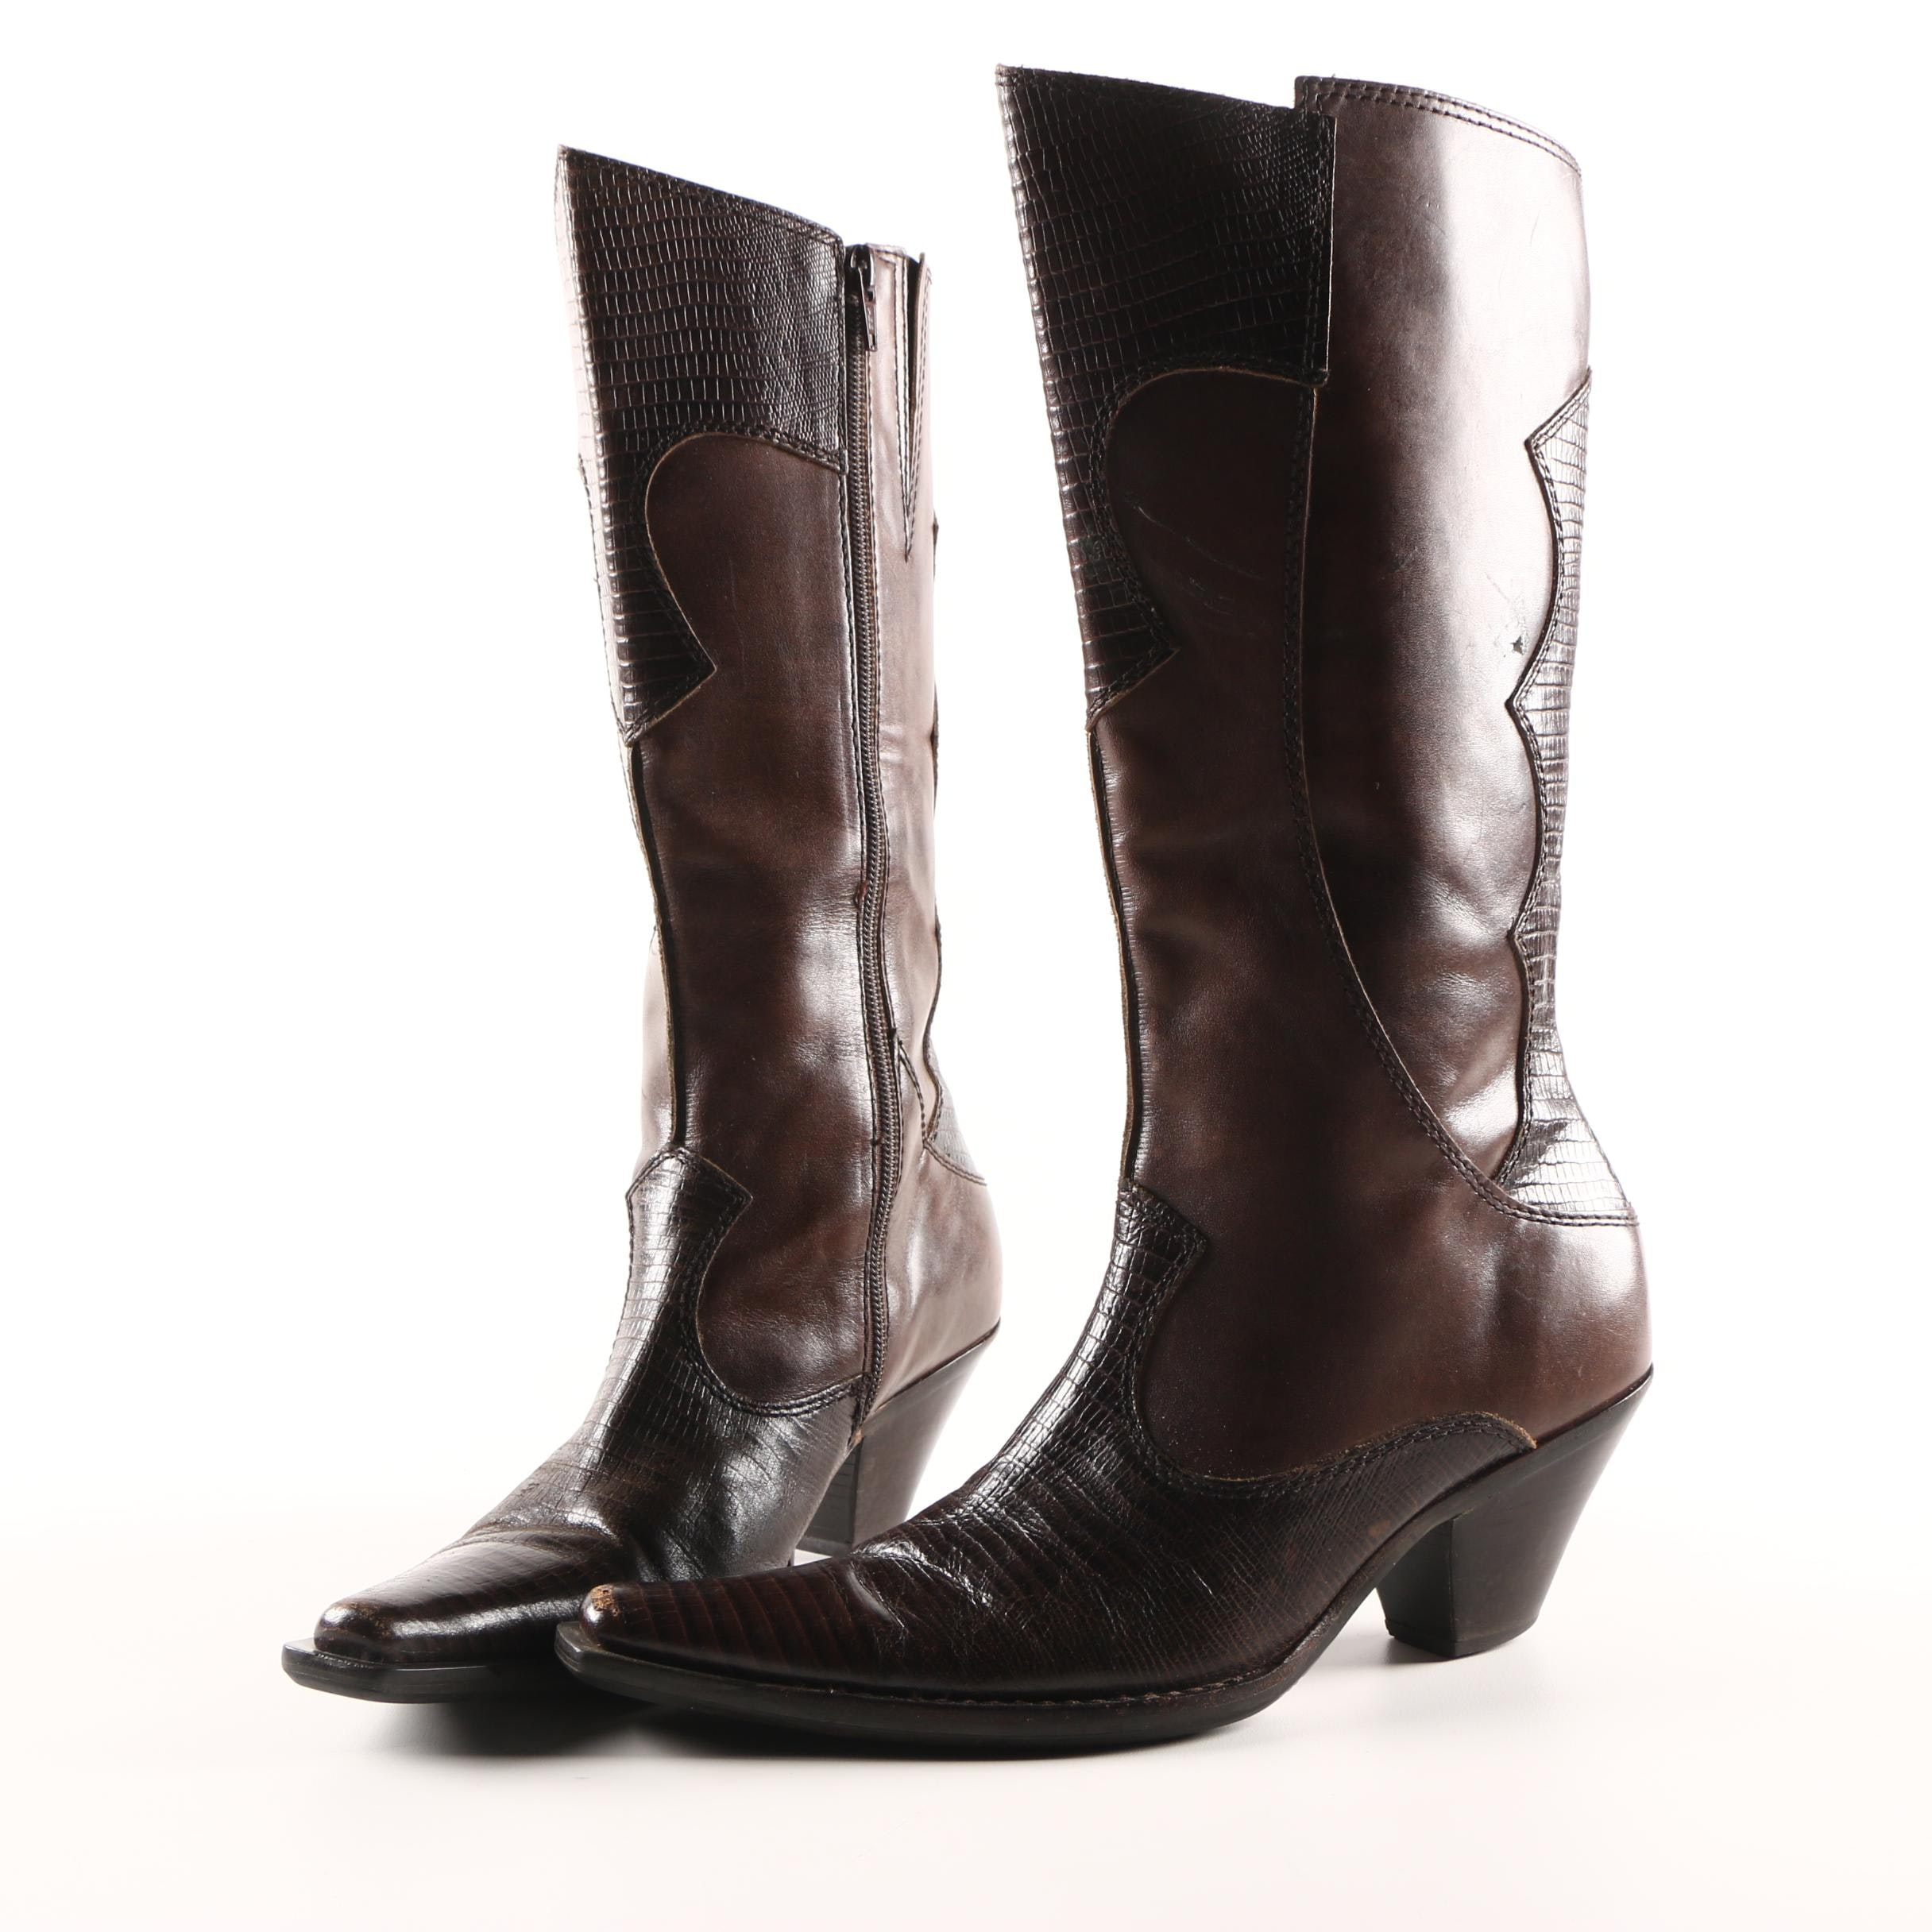 Women's Lizard Skin and Leather Cowboy Boots